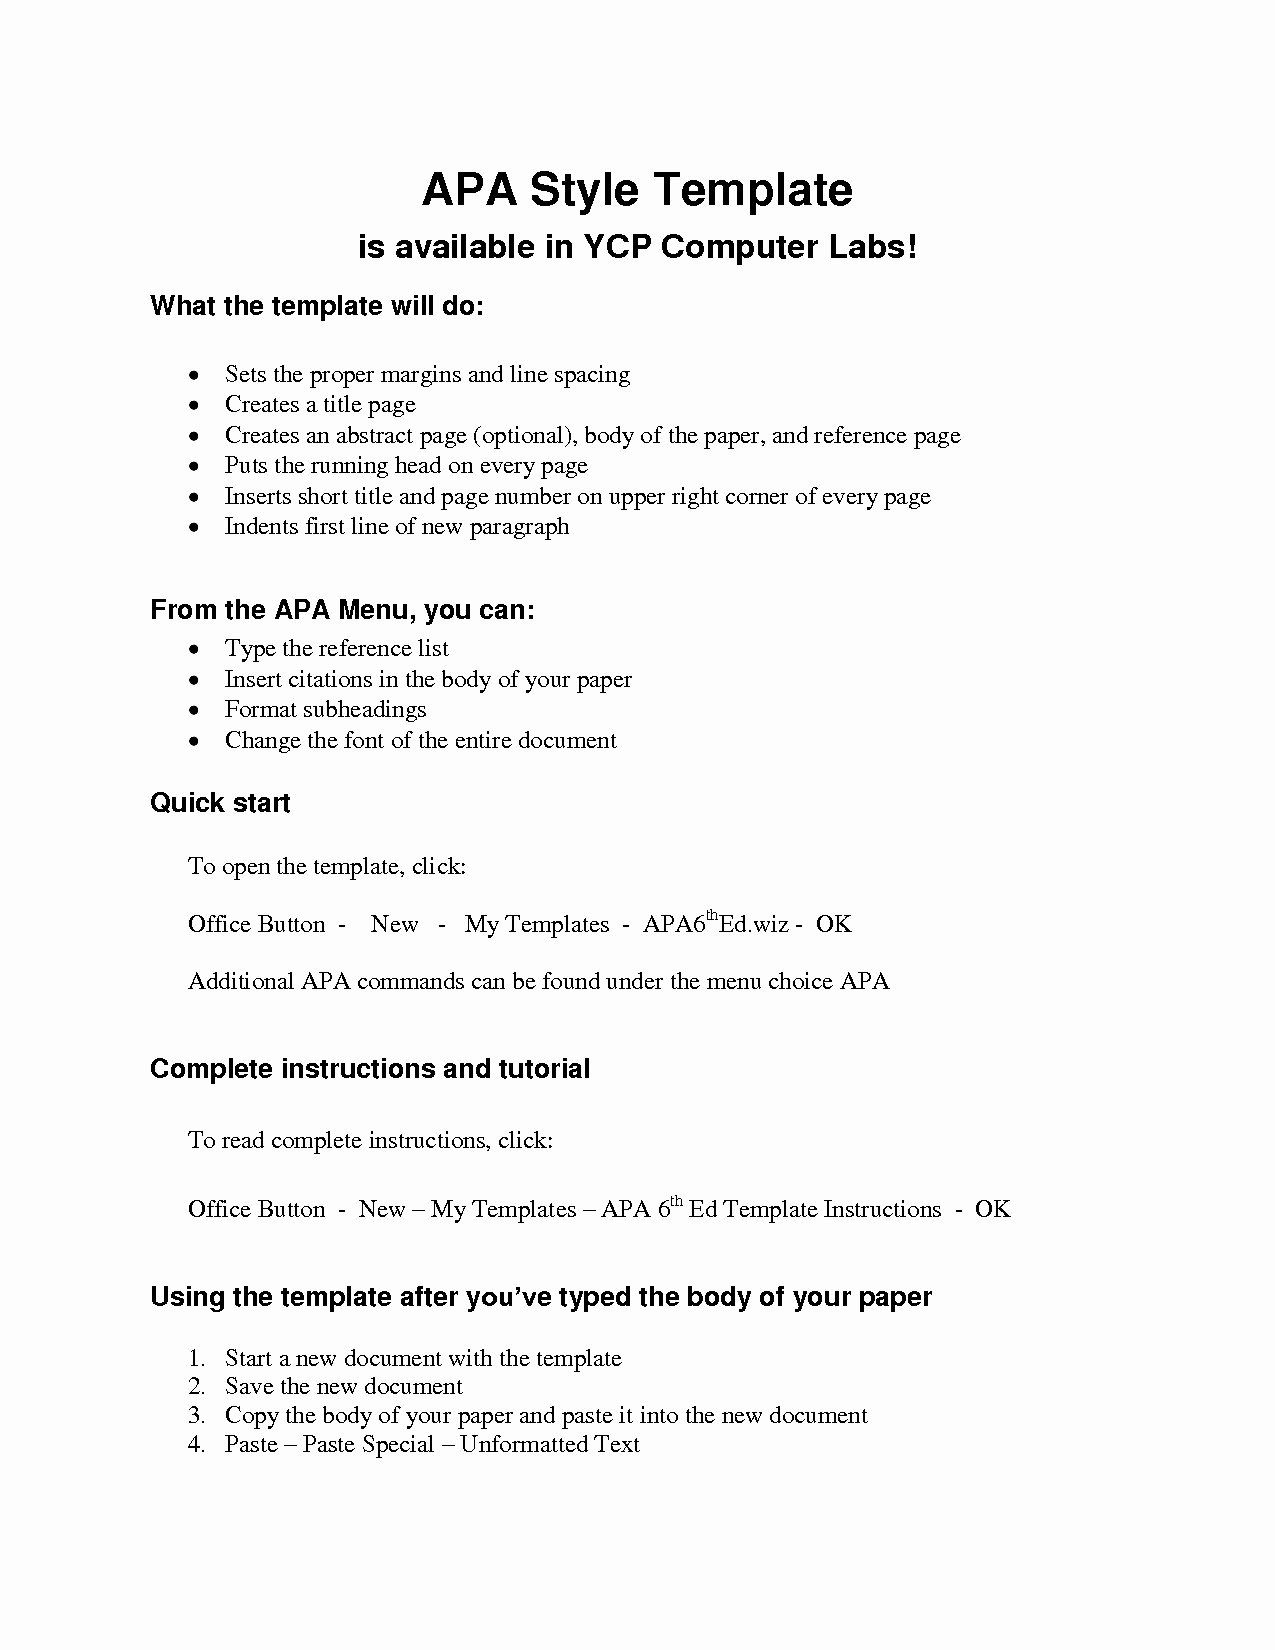 Apa Format Template Free New Apa Outline Template Apa Research Paper Research Paper Outline Template Research Paper Outline